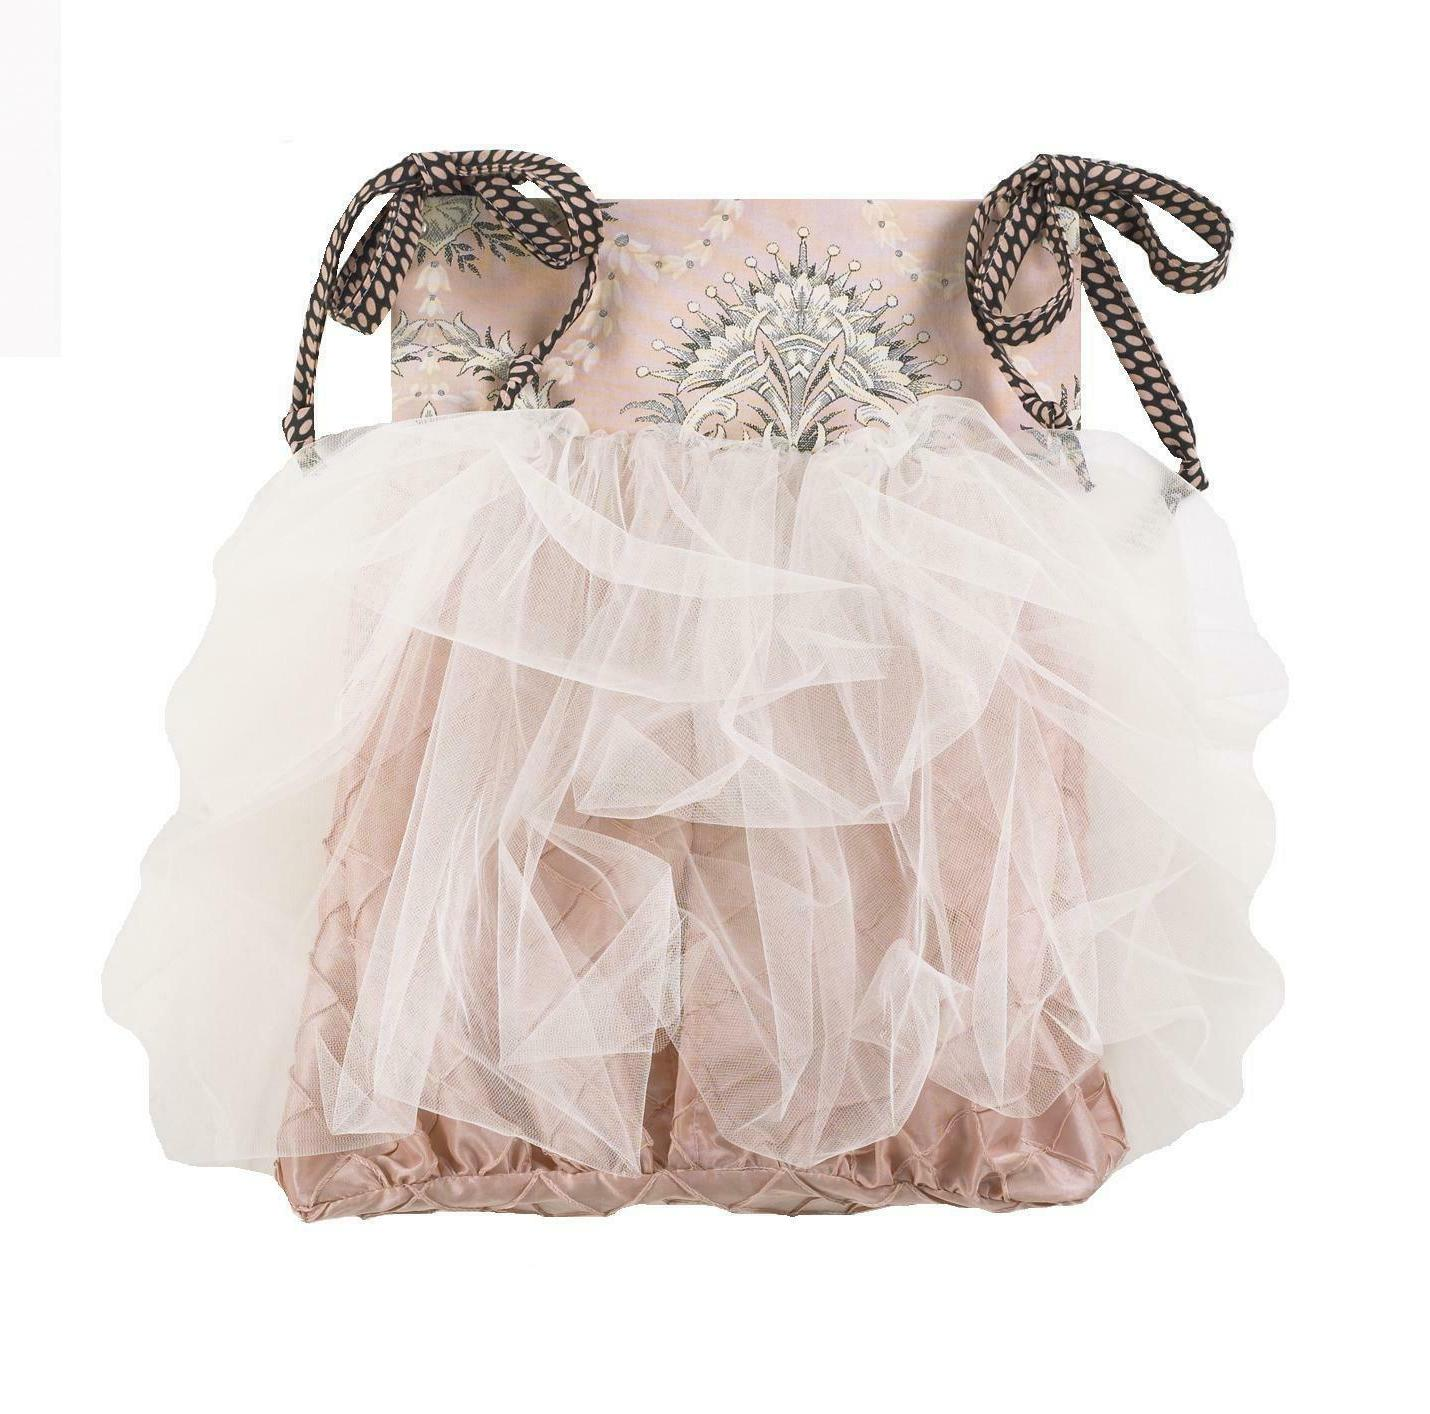 9 Piece Baby Tulle Charcoal